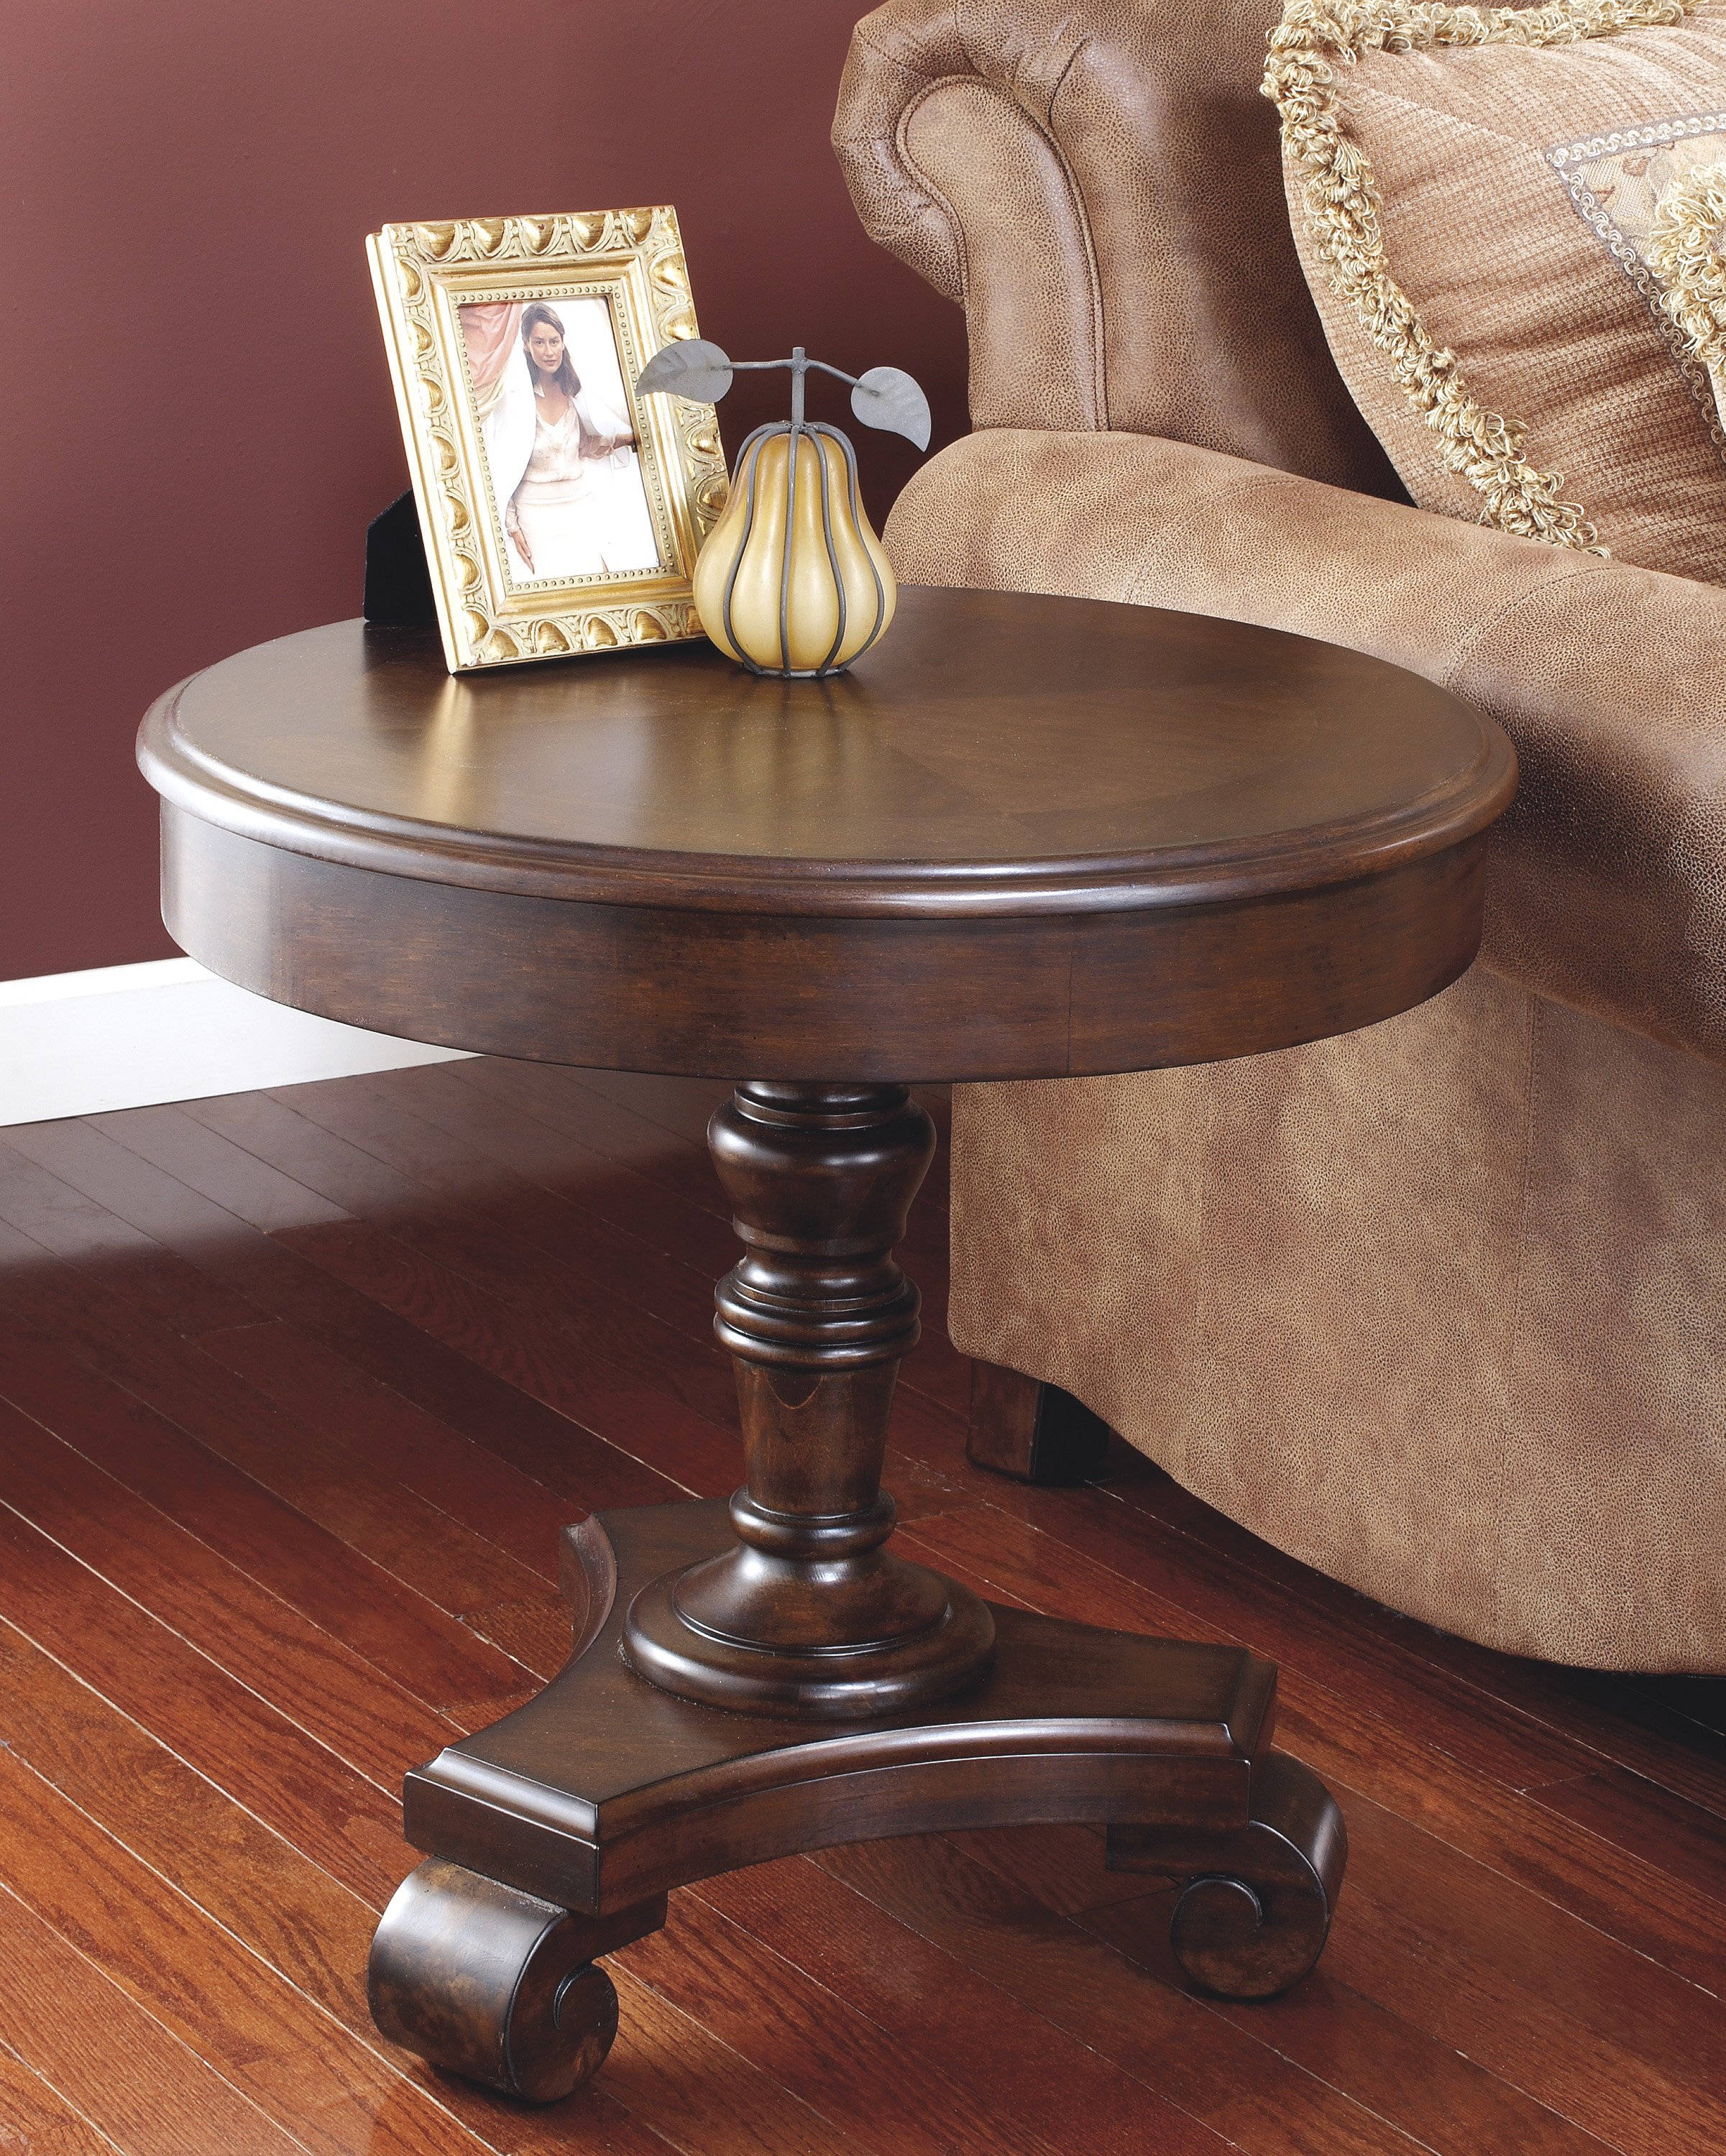 round end table the living room dark brown tables universal furniture collections pallet ideas laundry basket holder outdoor patio side timber coffee with glass top southwestern